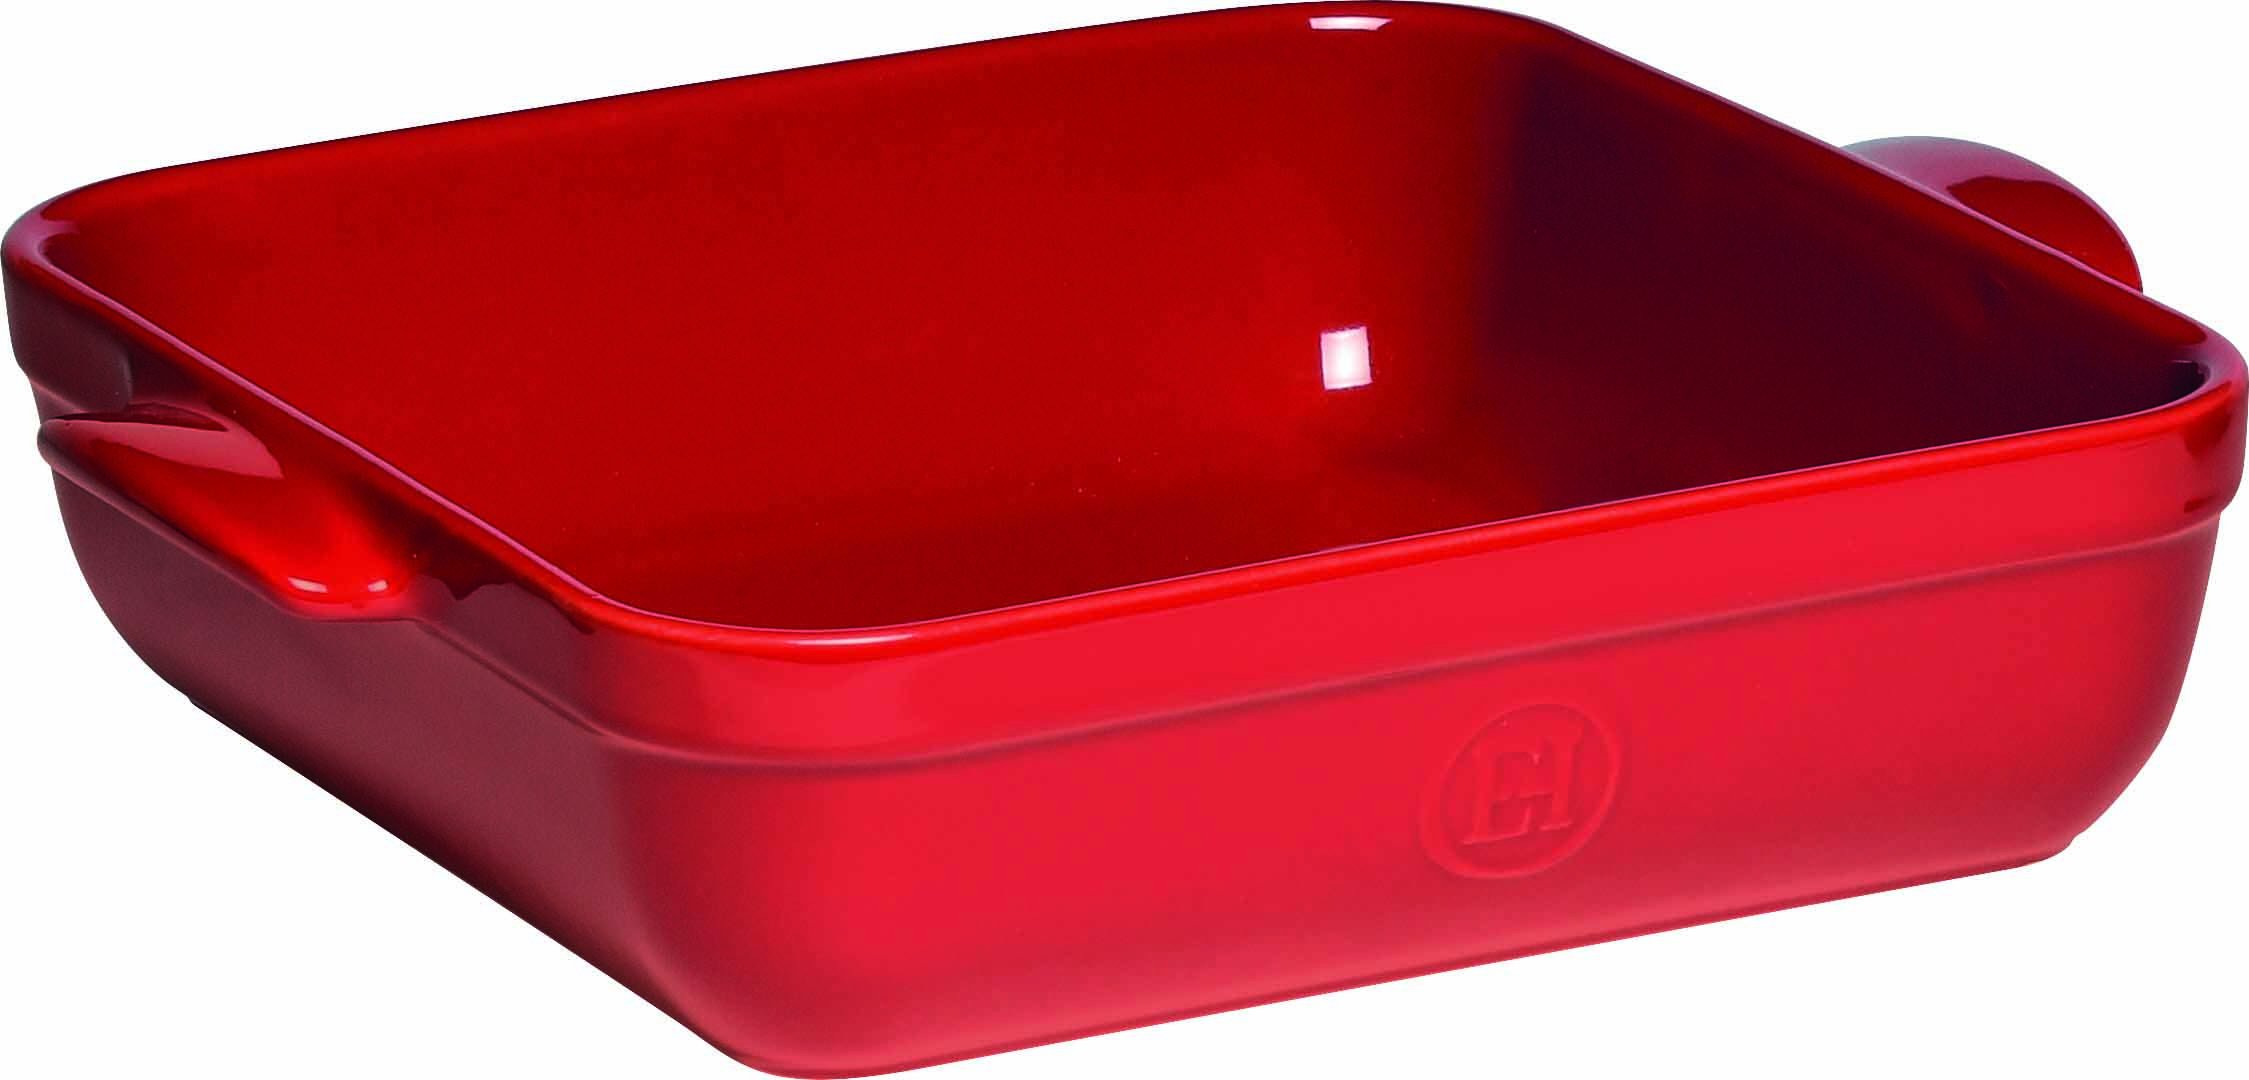 Emile Henry Made In France 9''x9'' Square Baking Dish, Burgundy Red